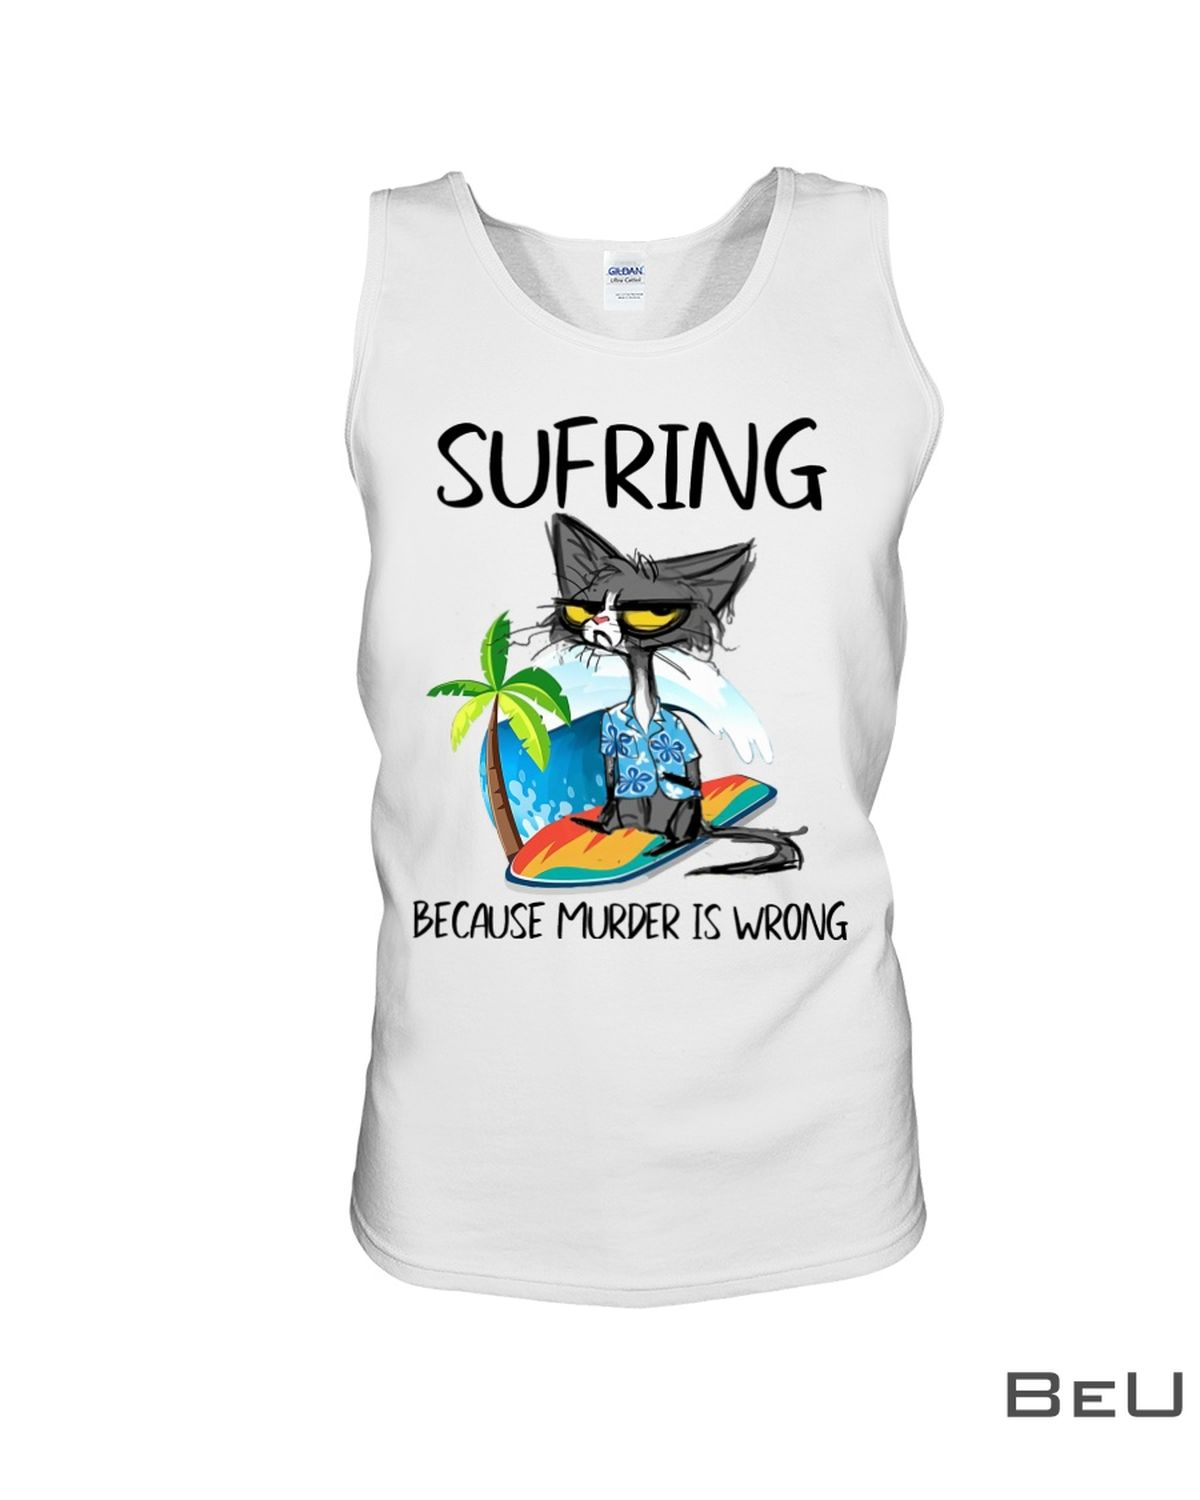 Sufring Because Murder Is Wrong Shirt, hoodie, tank top